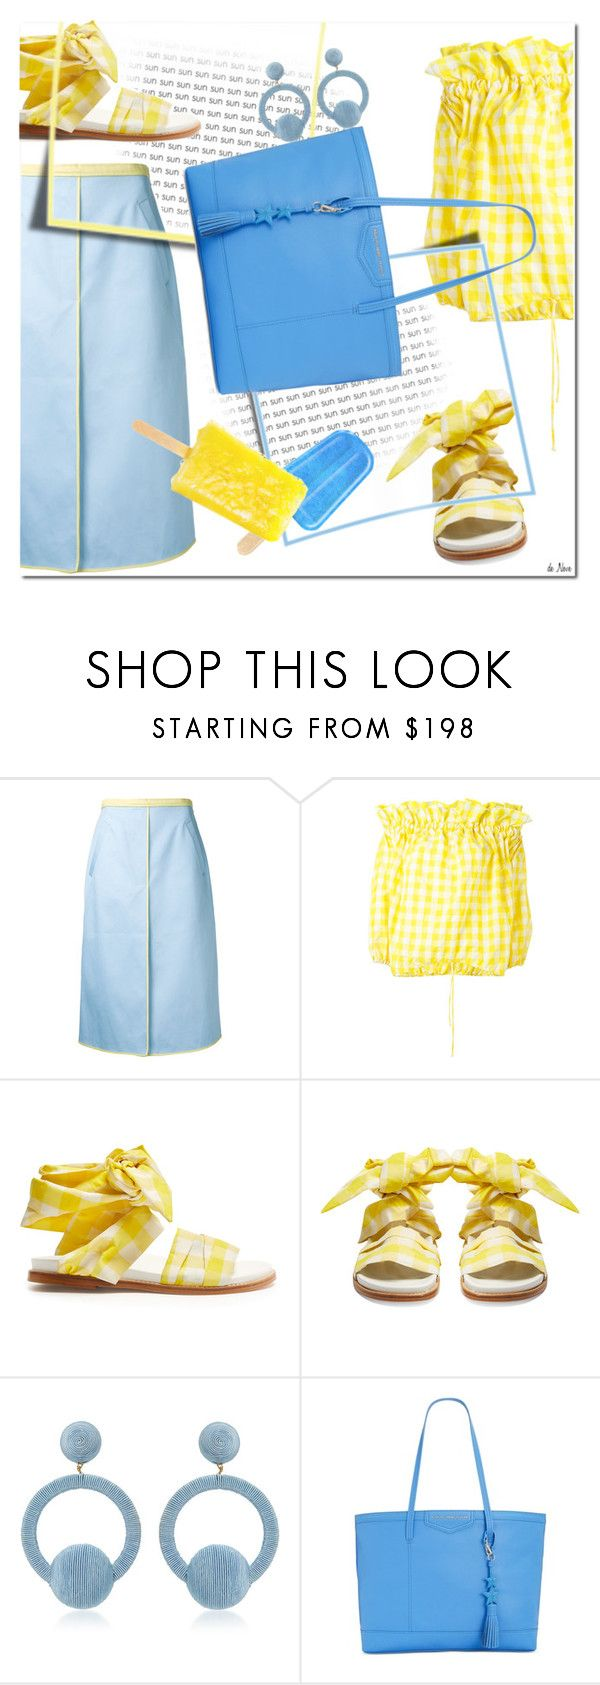 """YELLOW GINGHAM"" by deneve ❤ liked on Polyvore featuring Thom Browne, Marques'Almeida, Rebecca de Ravenel, Tommy Hilfiger, summerstyle, gingham and offshoulder"